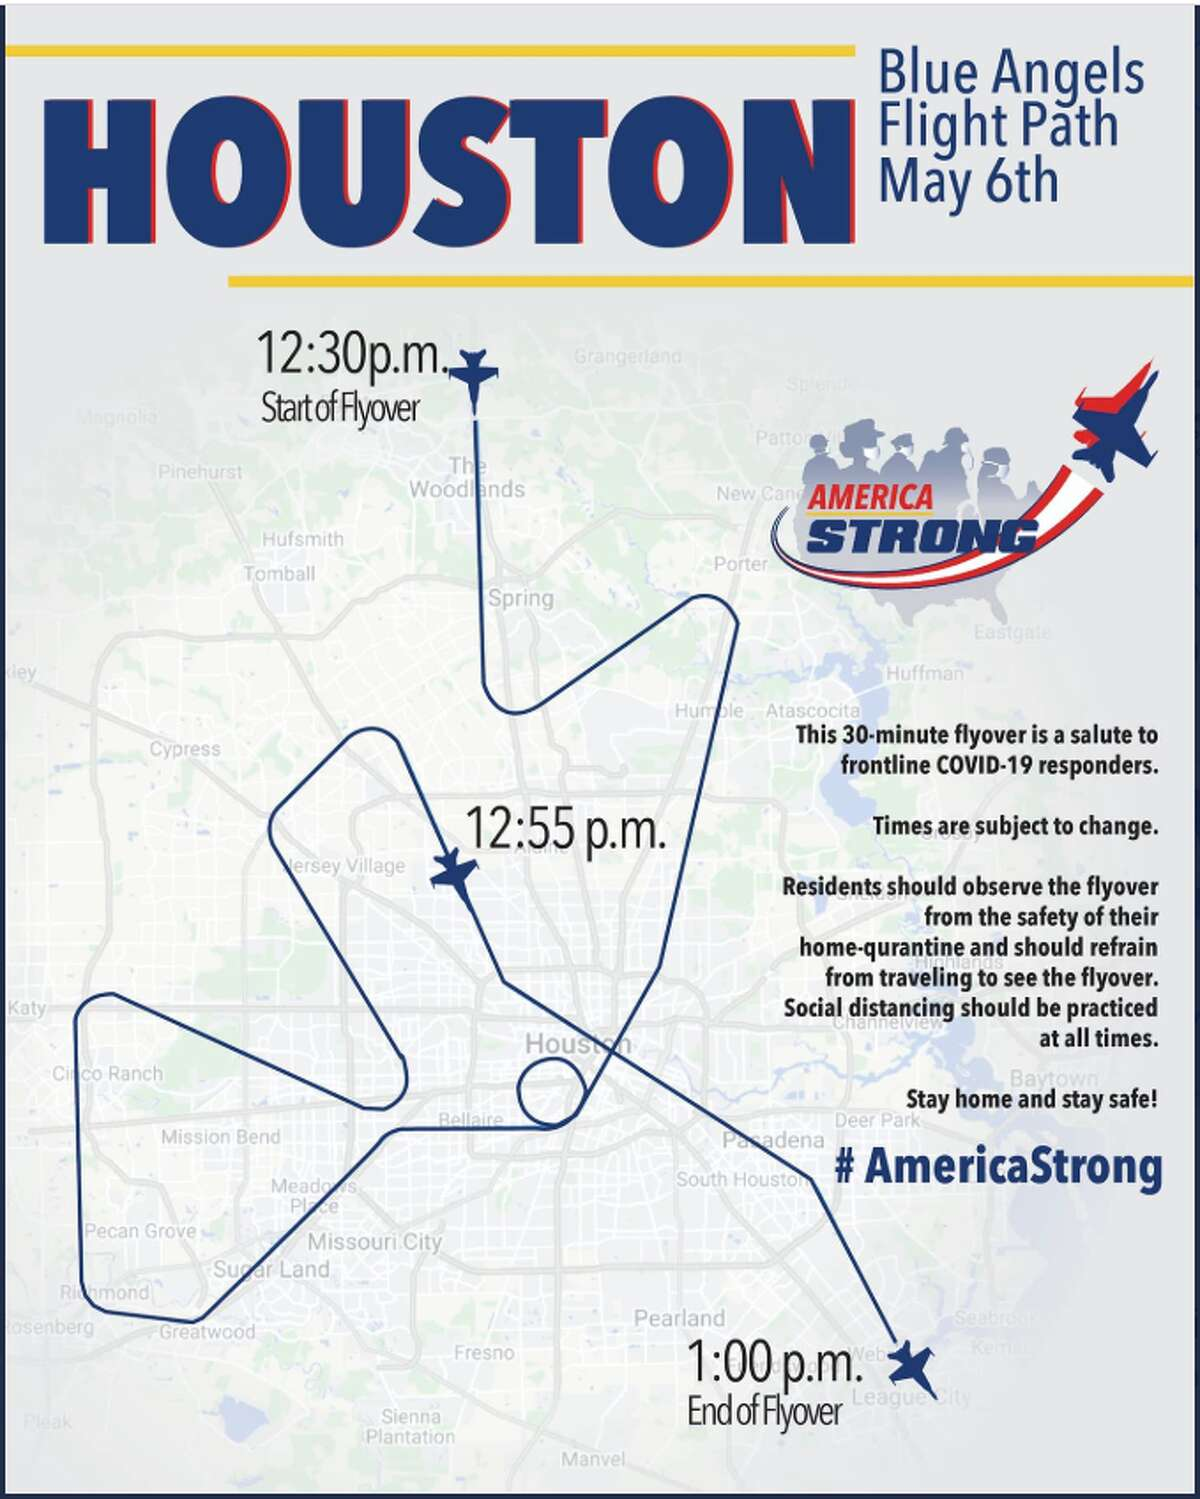 """Your #BlueAngels are heading your way Houston! Check out the overhead times and route on the graph they shared. """"Residents should observe the flyover from the safety of their home-quarantine and should refrain from traveling to see the flyover. Social distancing should be practiced at all times,"""" said a Twitter post."""